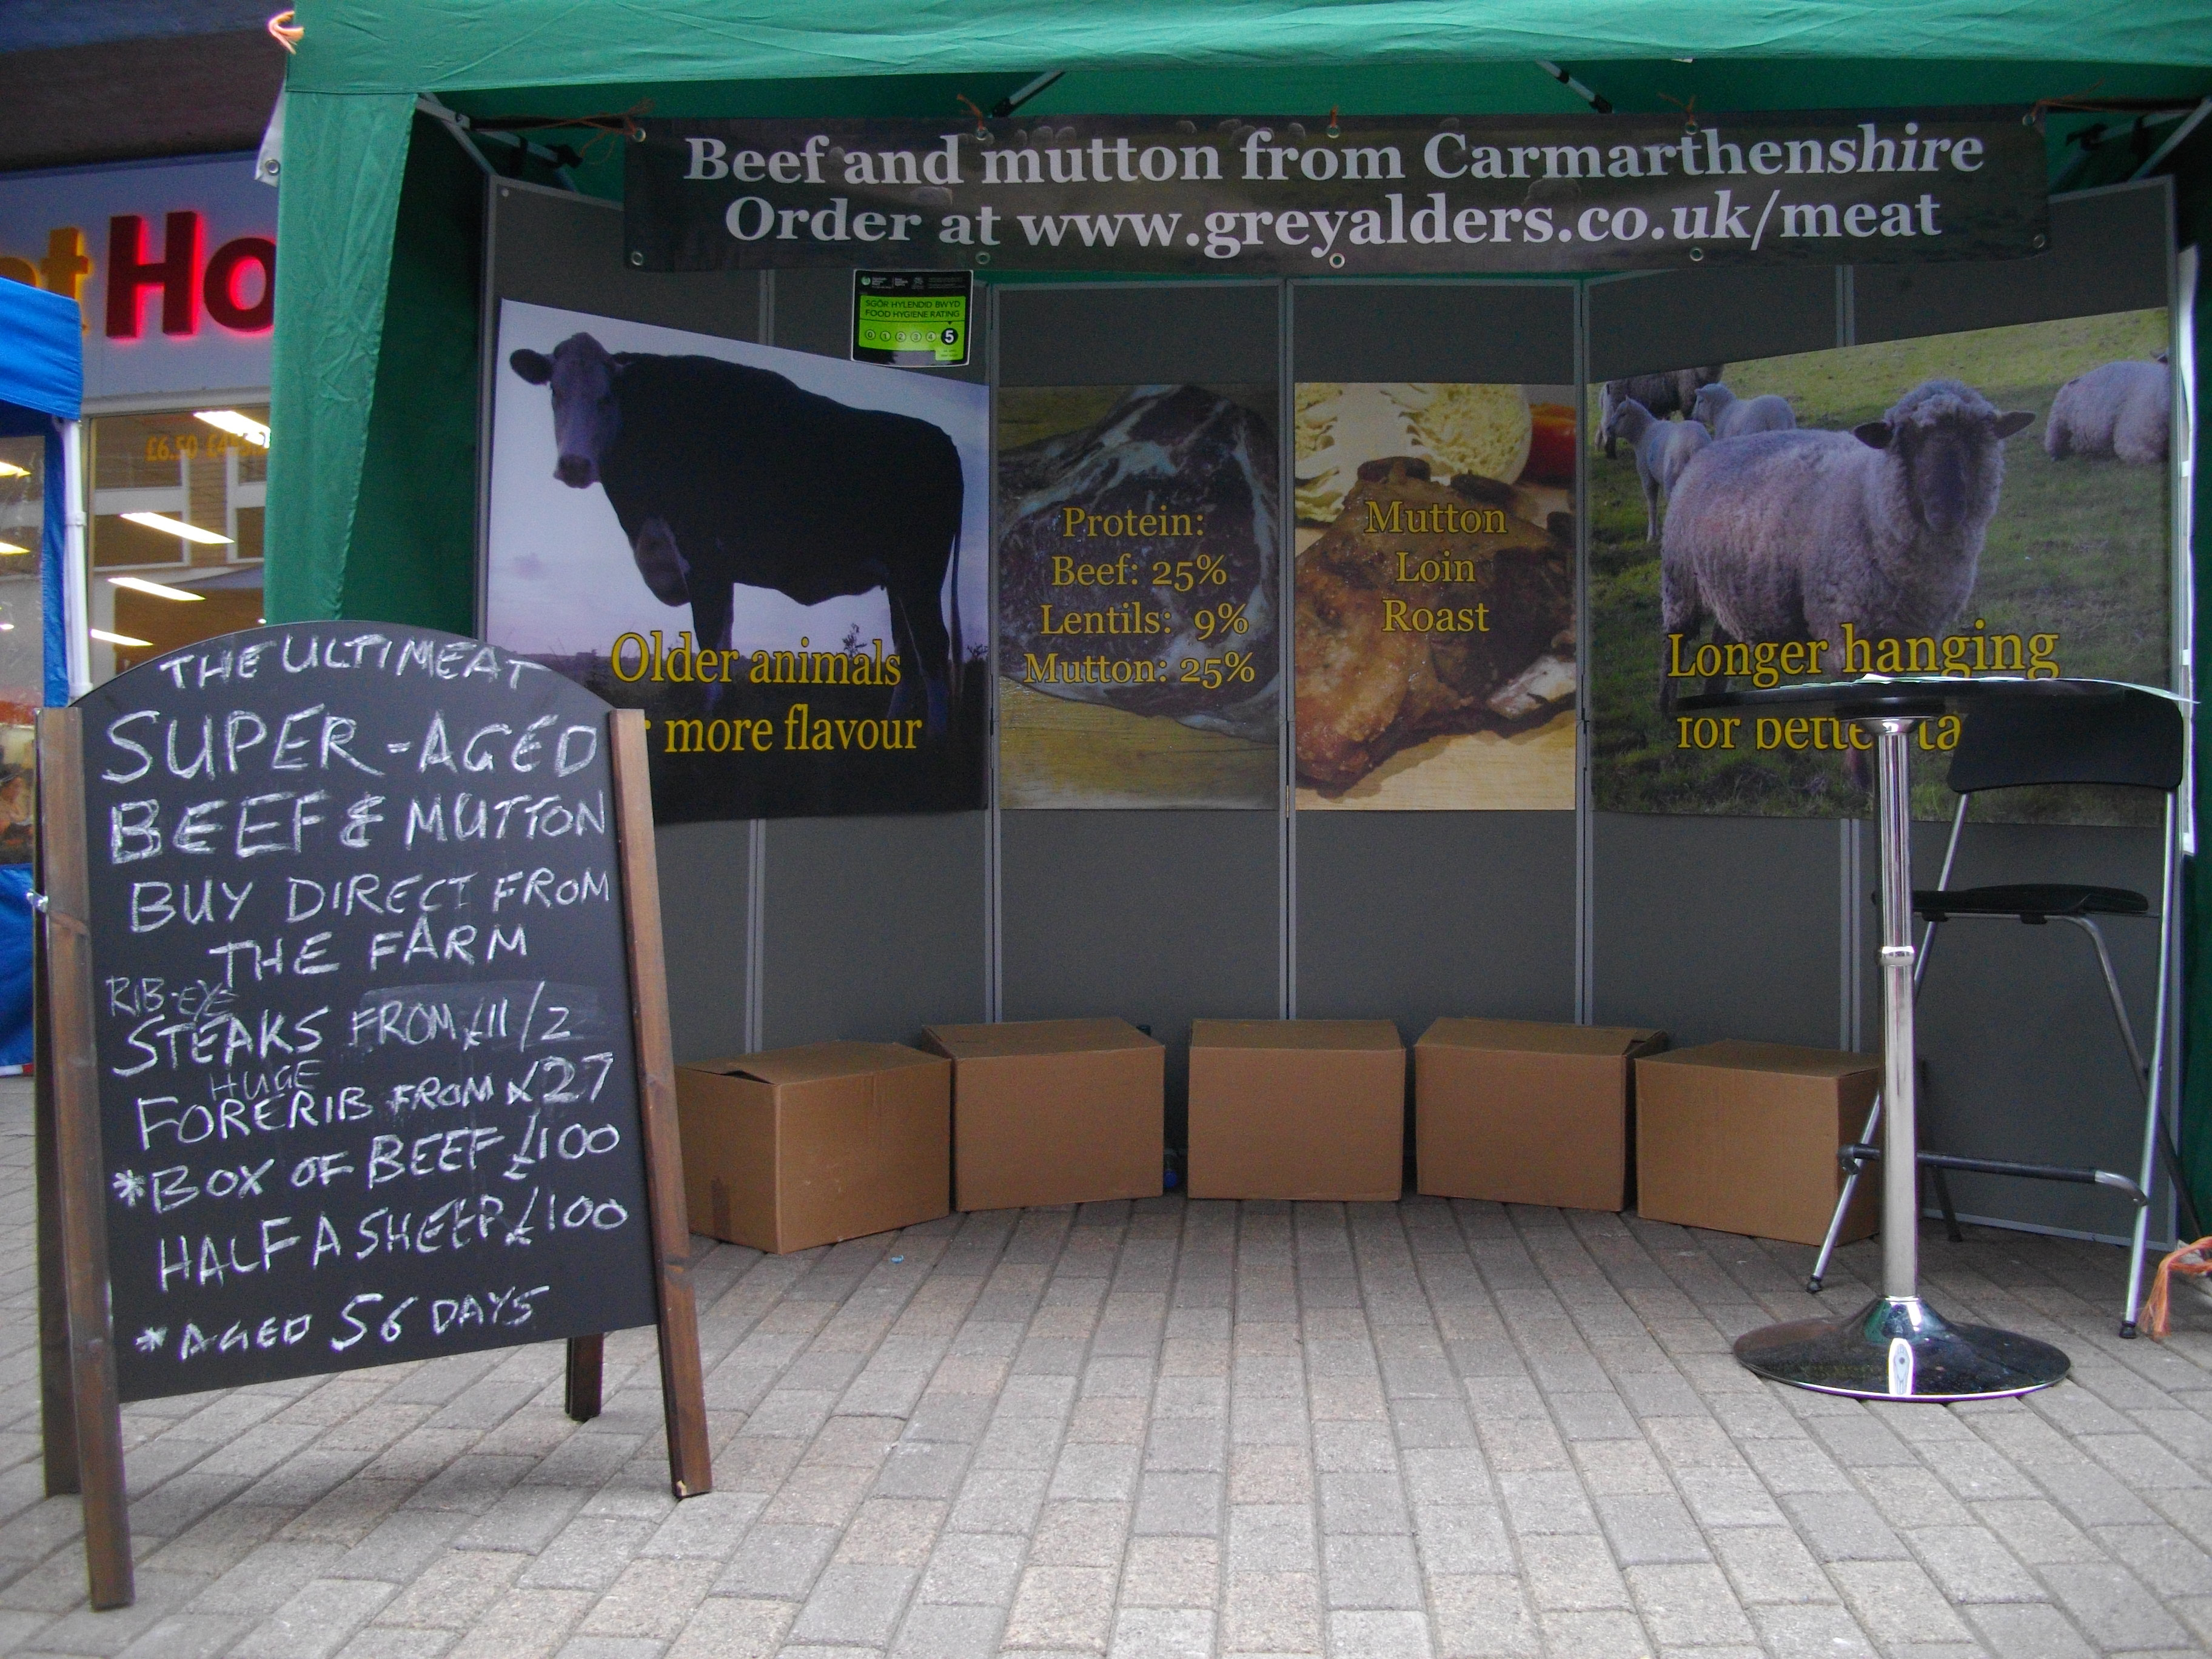 The stall complete with blackboard for special offers.